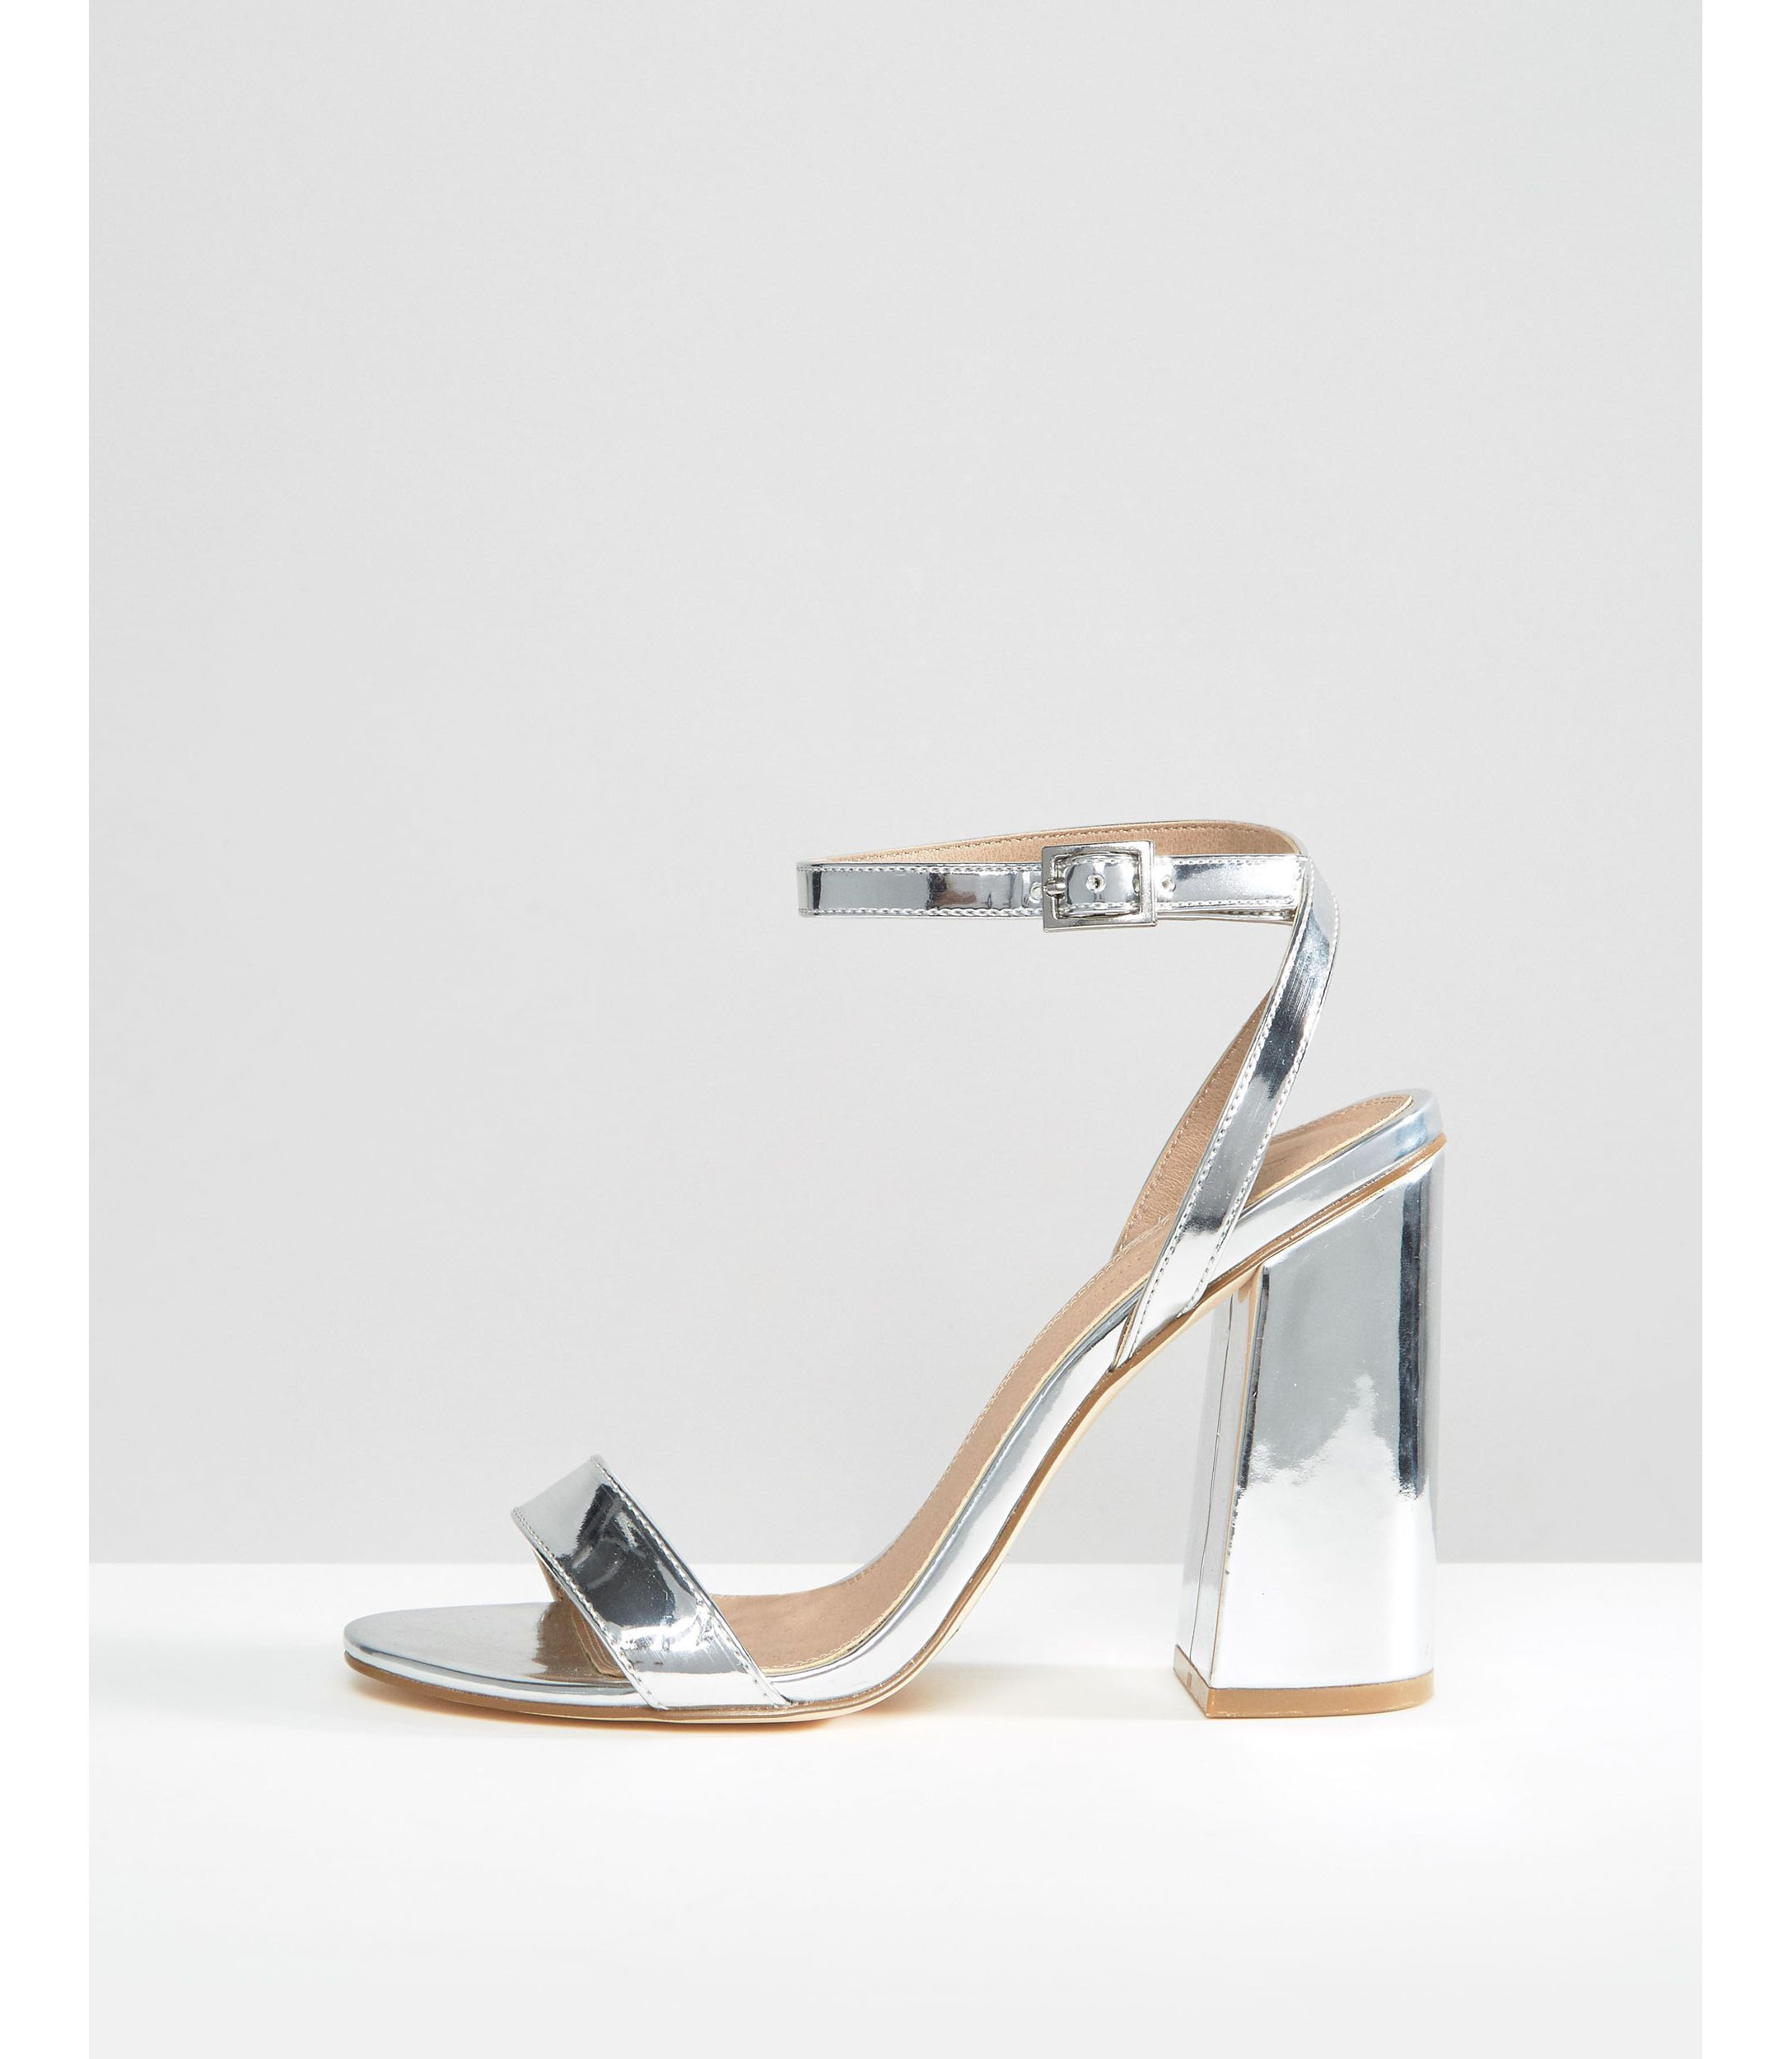 ★ASOS★ HAMPSTEAD High Heels